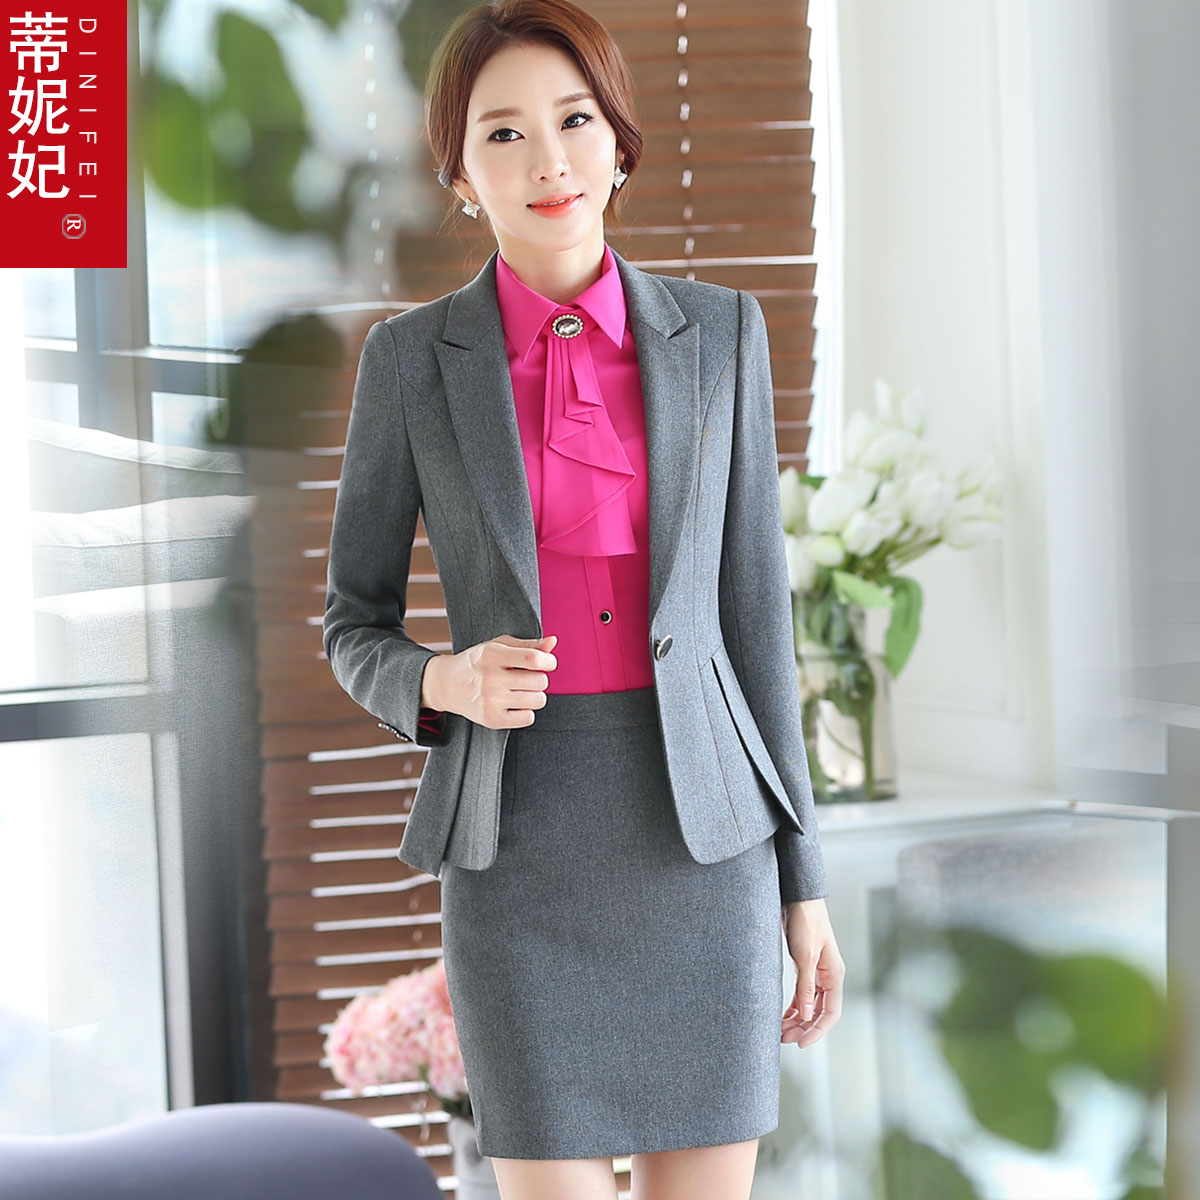 Dini fei 2016 korean version of the spring and autumn ol ladies wear suits ladies are fitting body suit skirt suit skirt